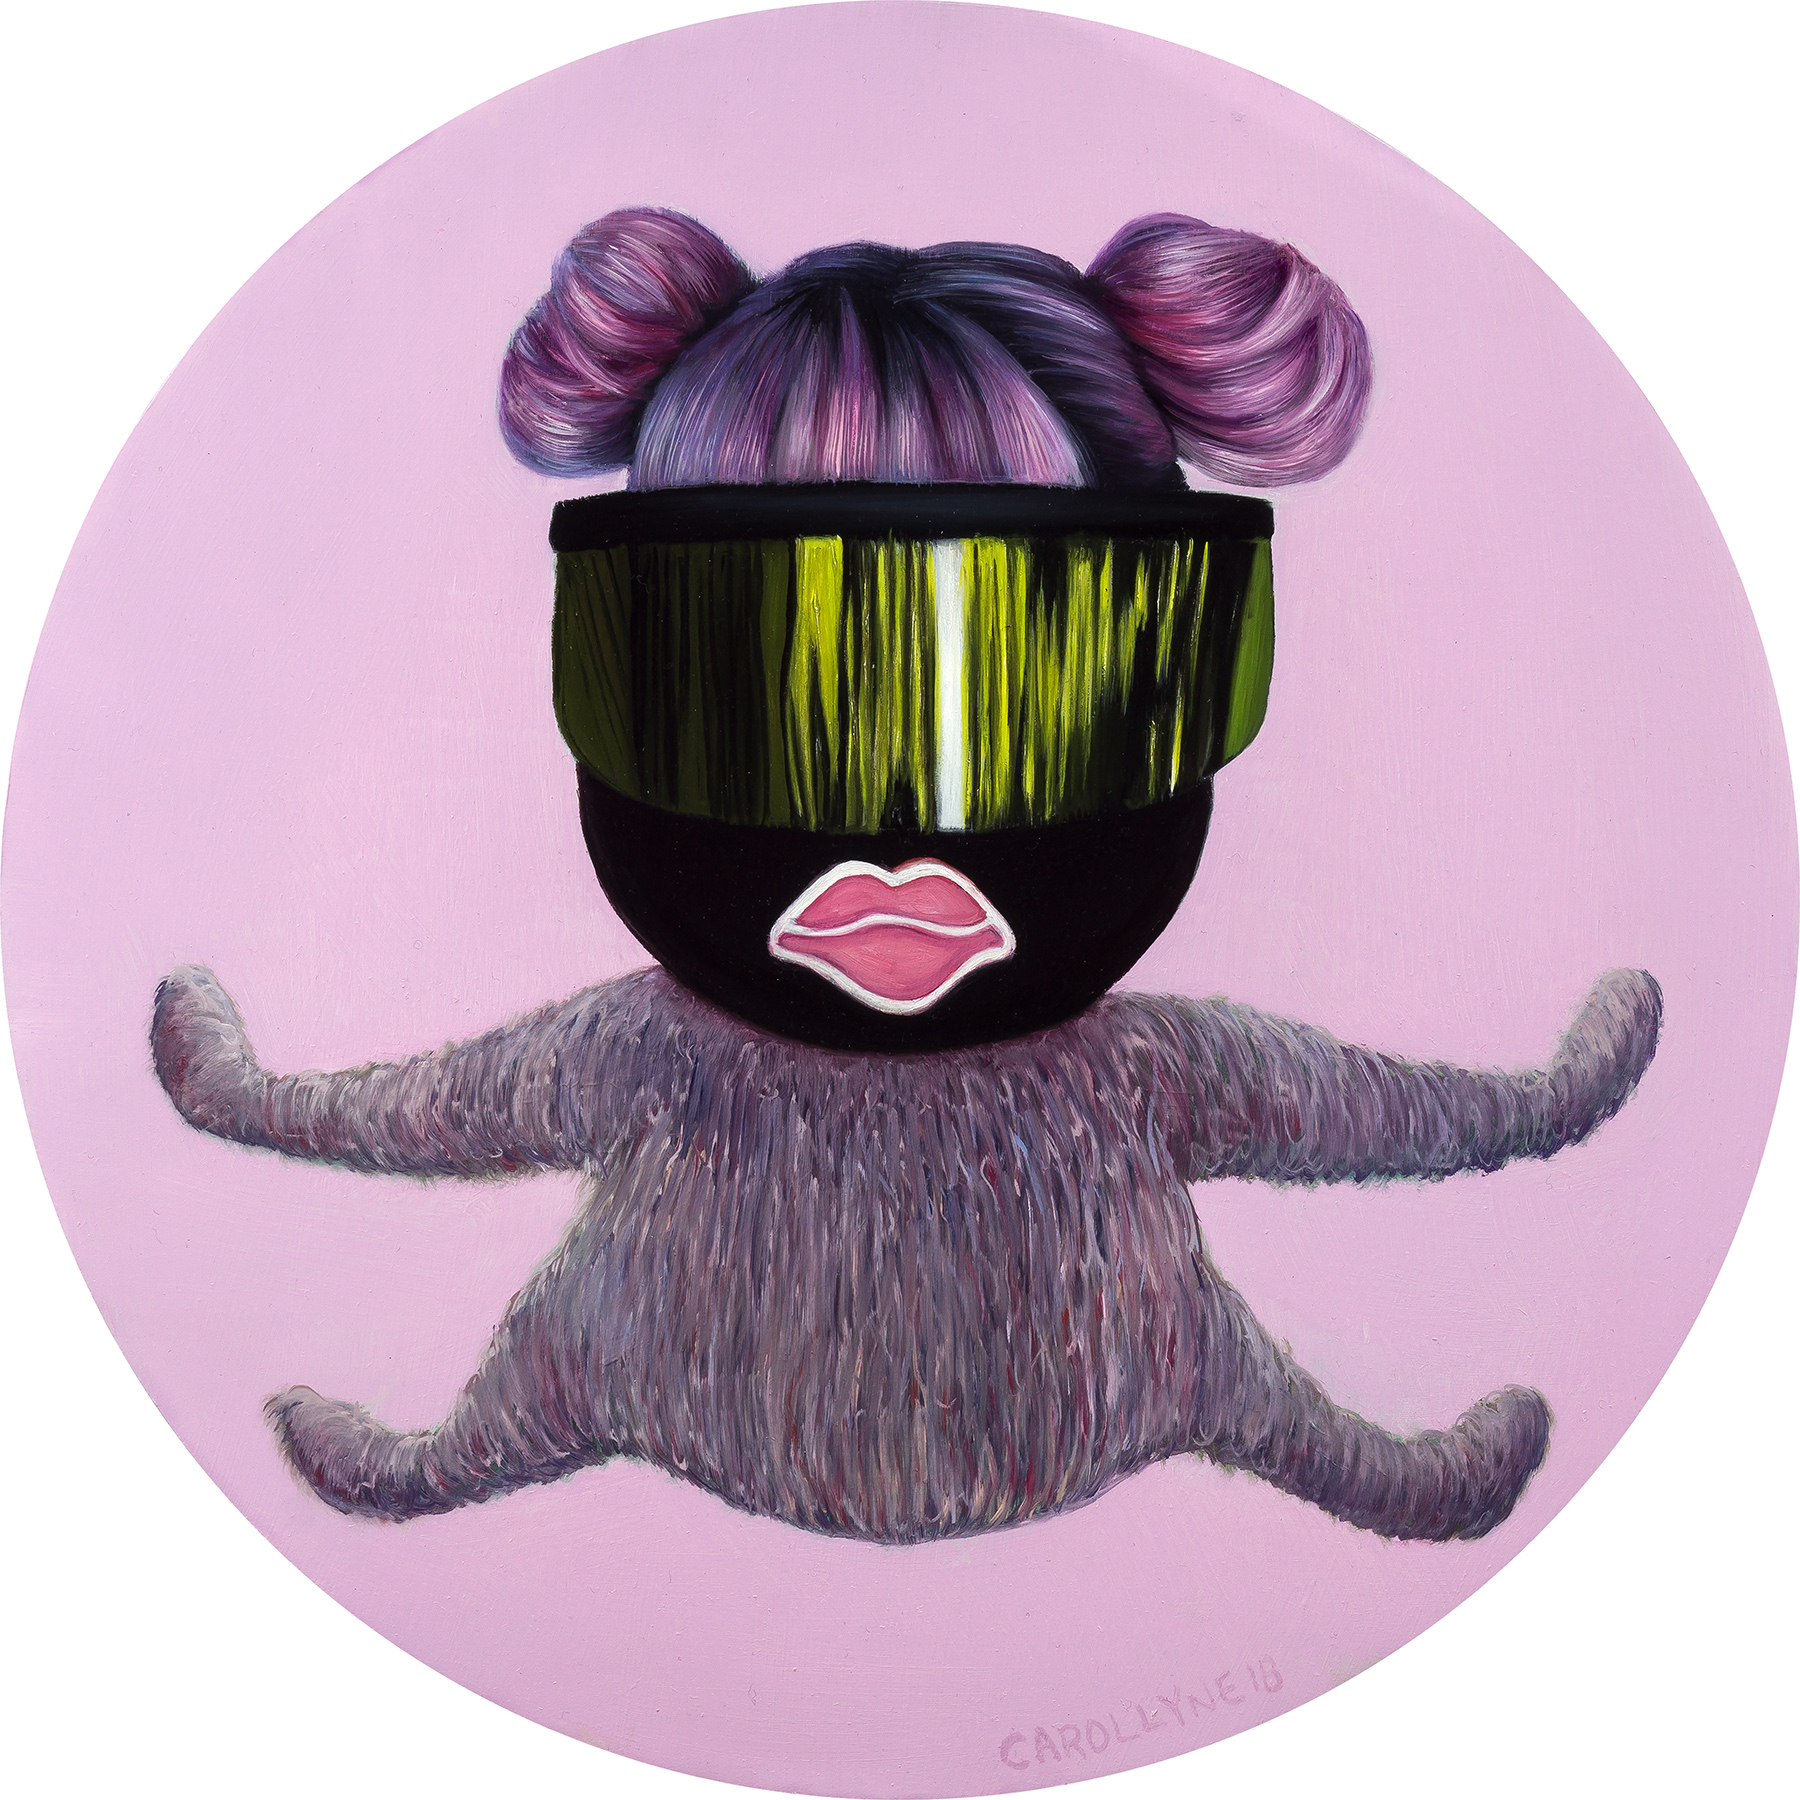 mtSQRL Bionic, 2018, Carollyne Yardley, Oil on panel, 15″ diameter, $1,200